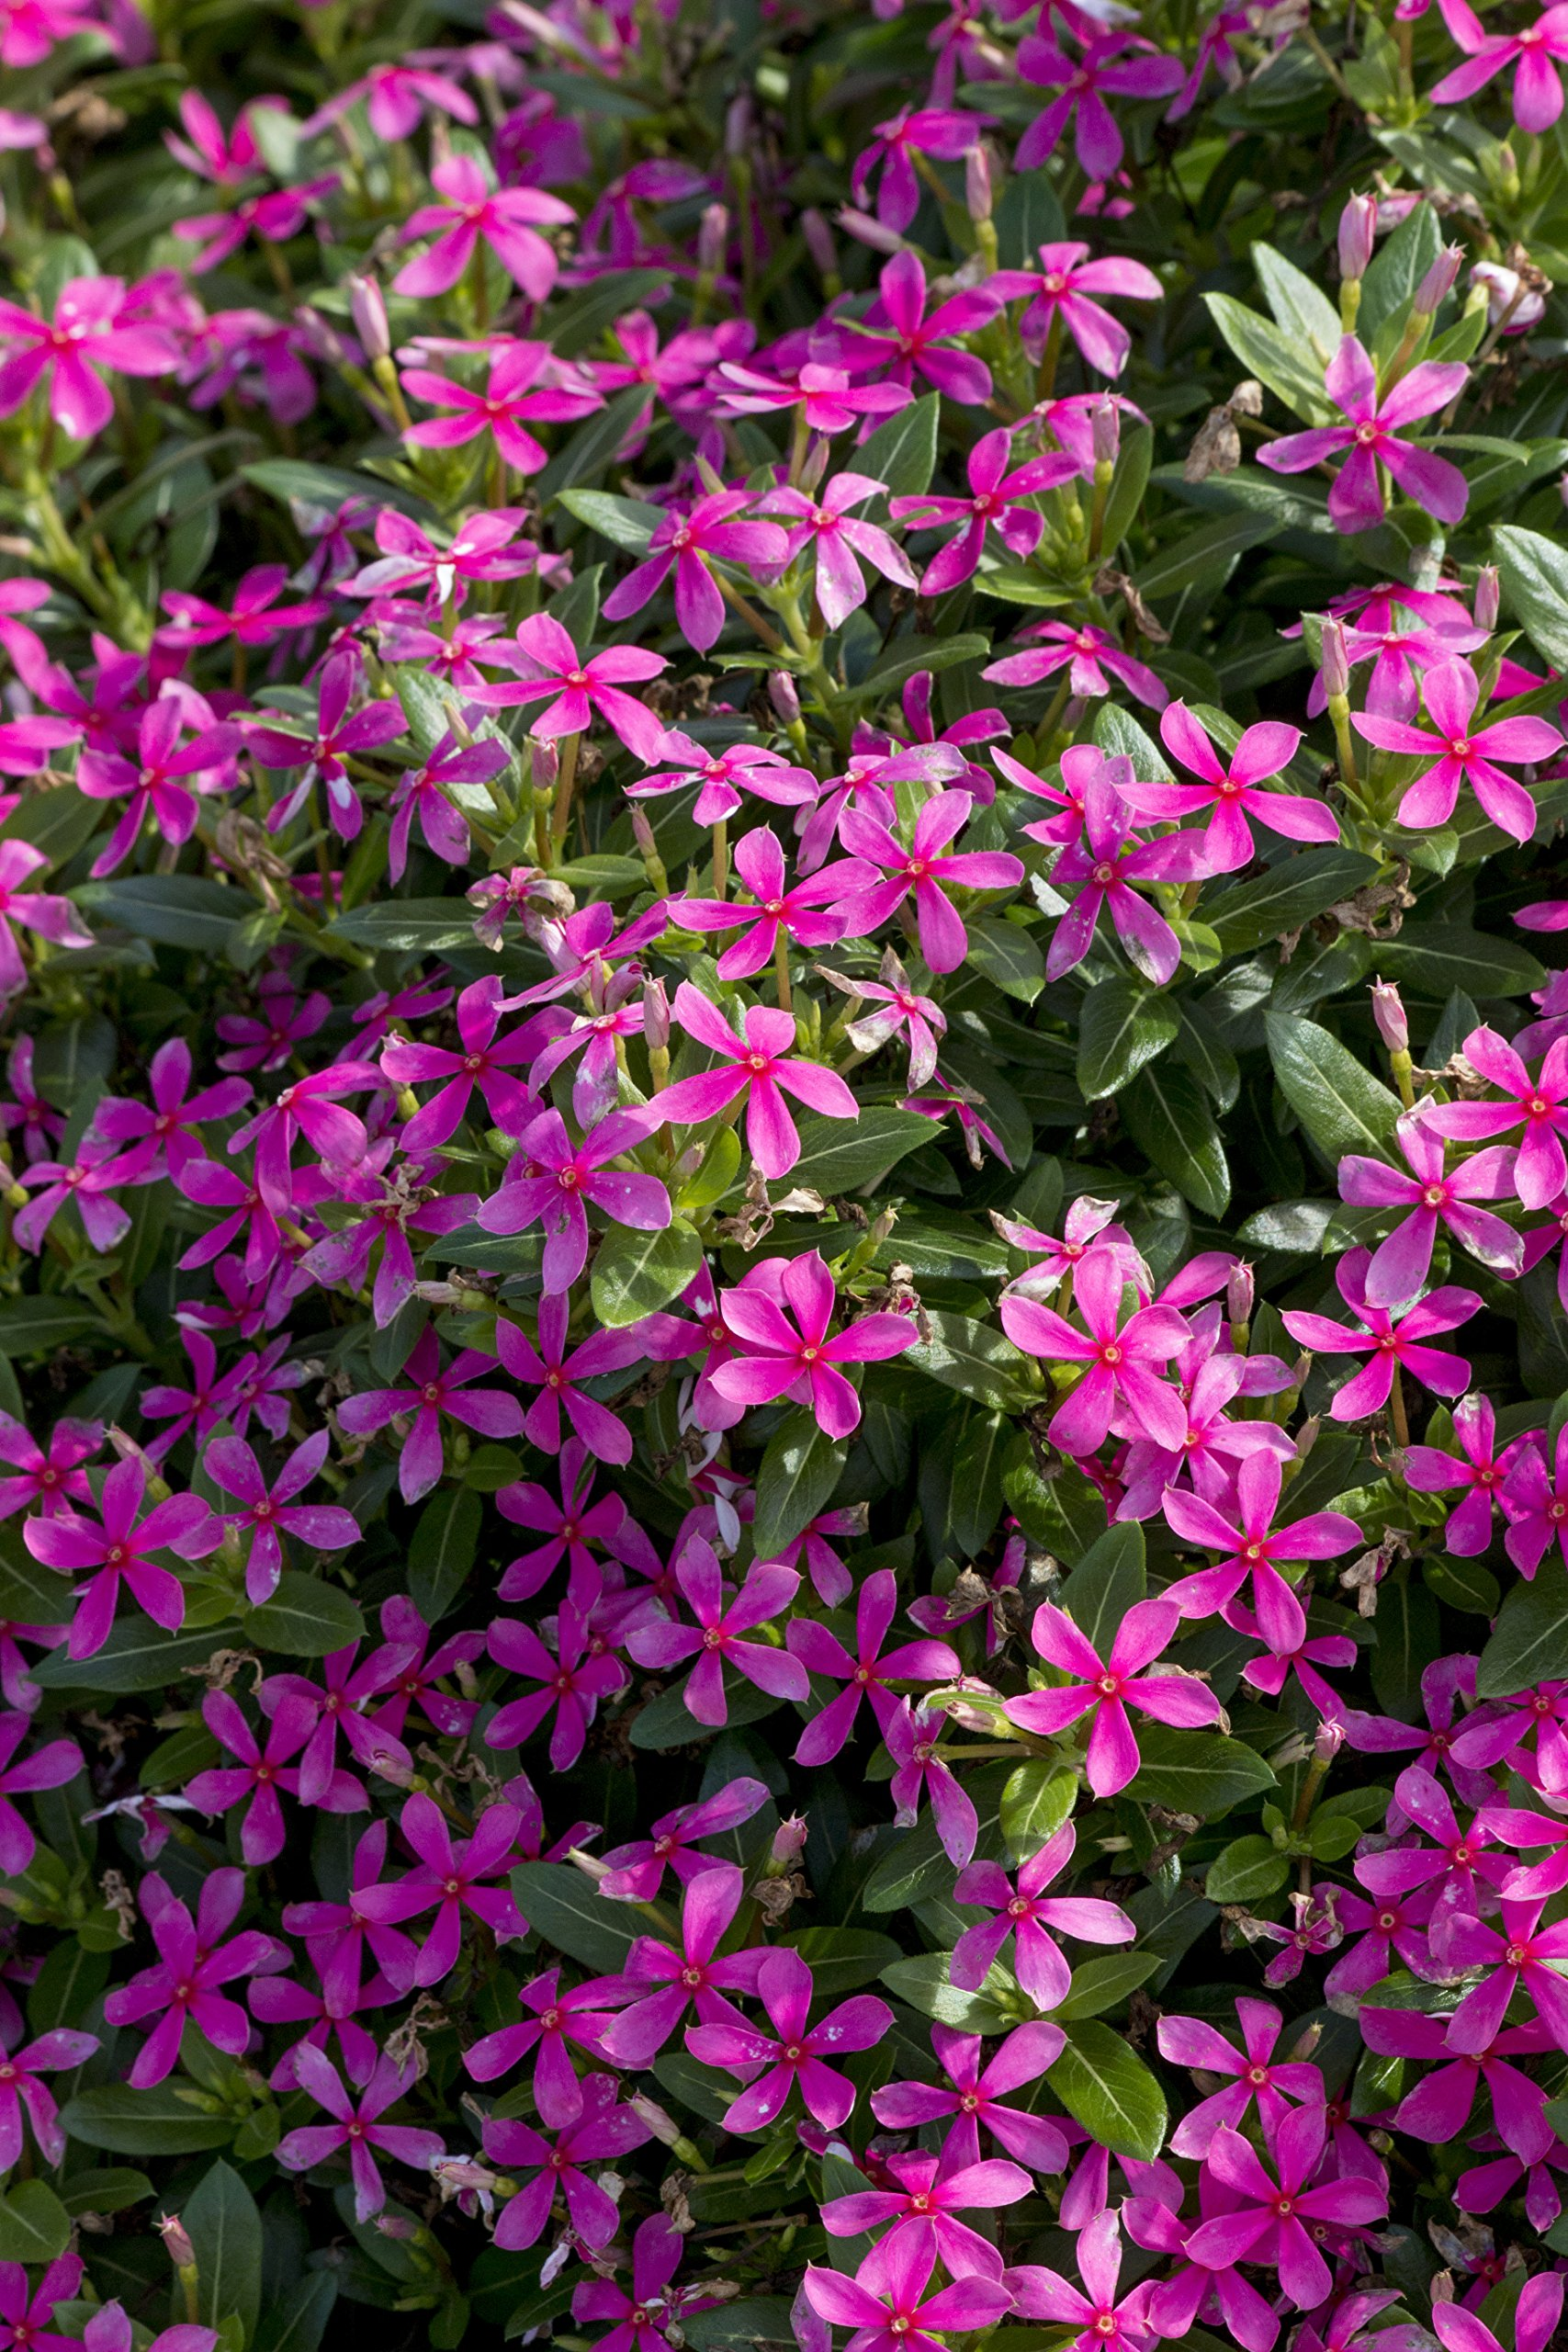 Costa Farms Catharanthus, Live Outdoor Flowering Plants, 12-Pack, Pink by Costa Farms (Image #1)